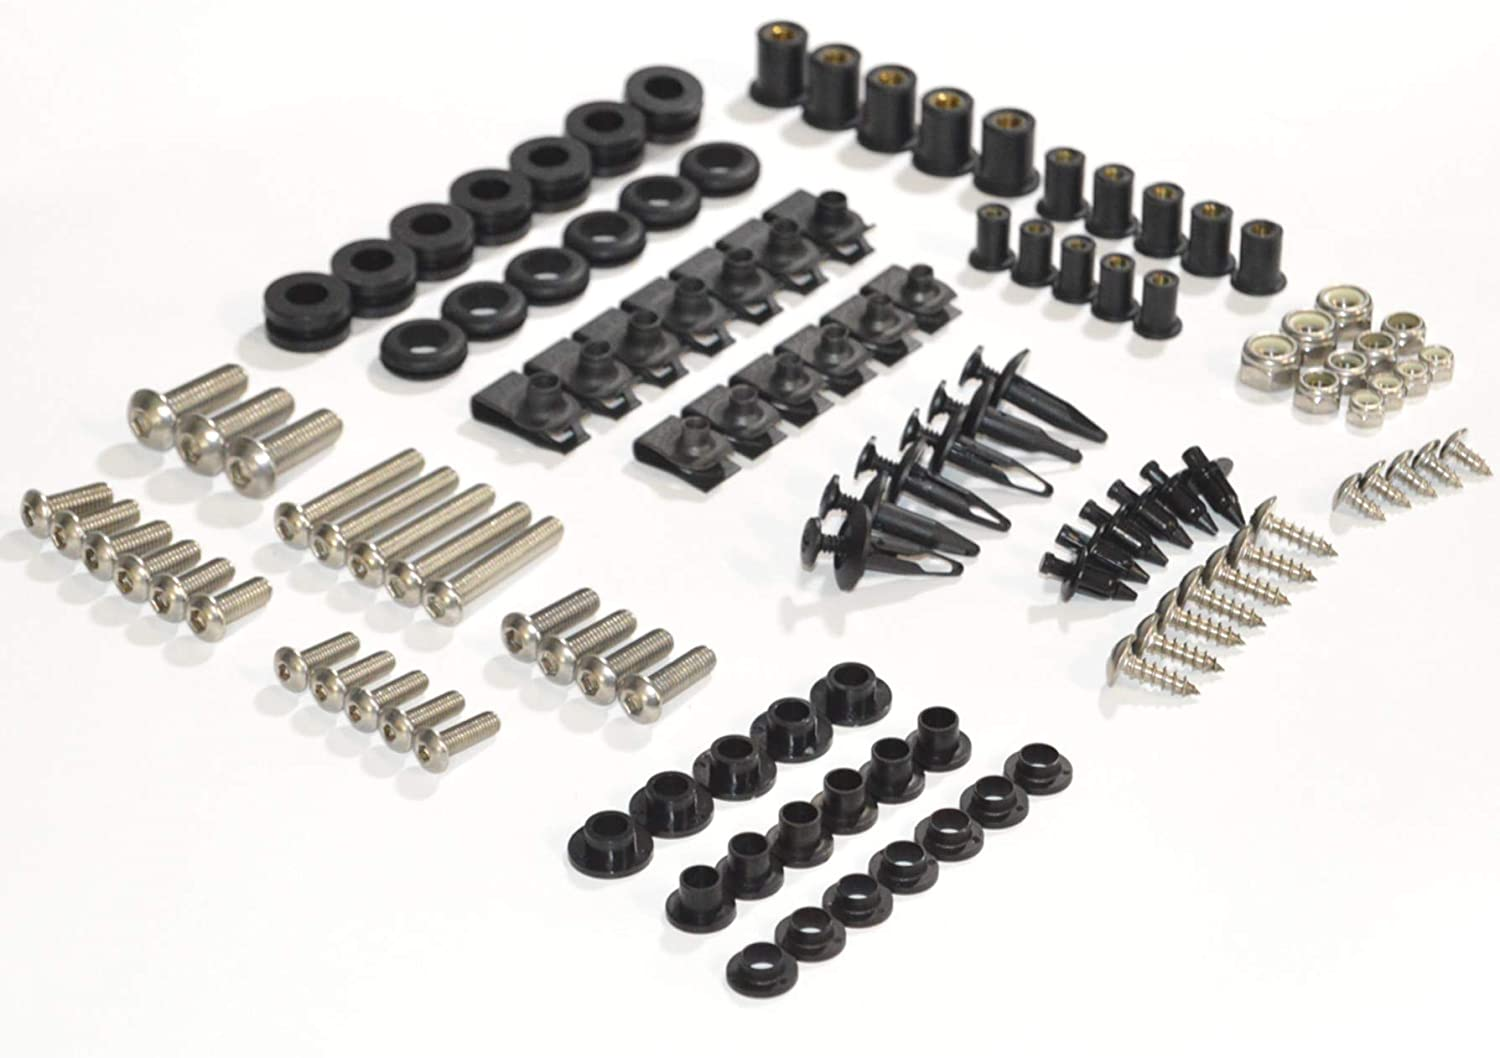 Complete Motorcycle Fairing Bolt Kit For Kawasaki Ninja ZX-12R 2002-2005 Body Screws, Fasteners, and Hardware